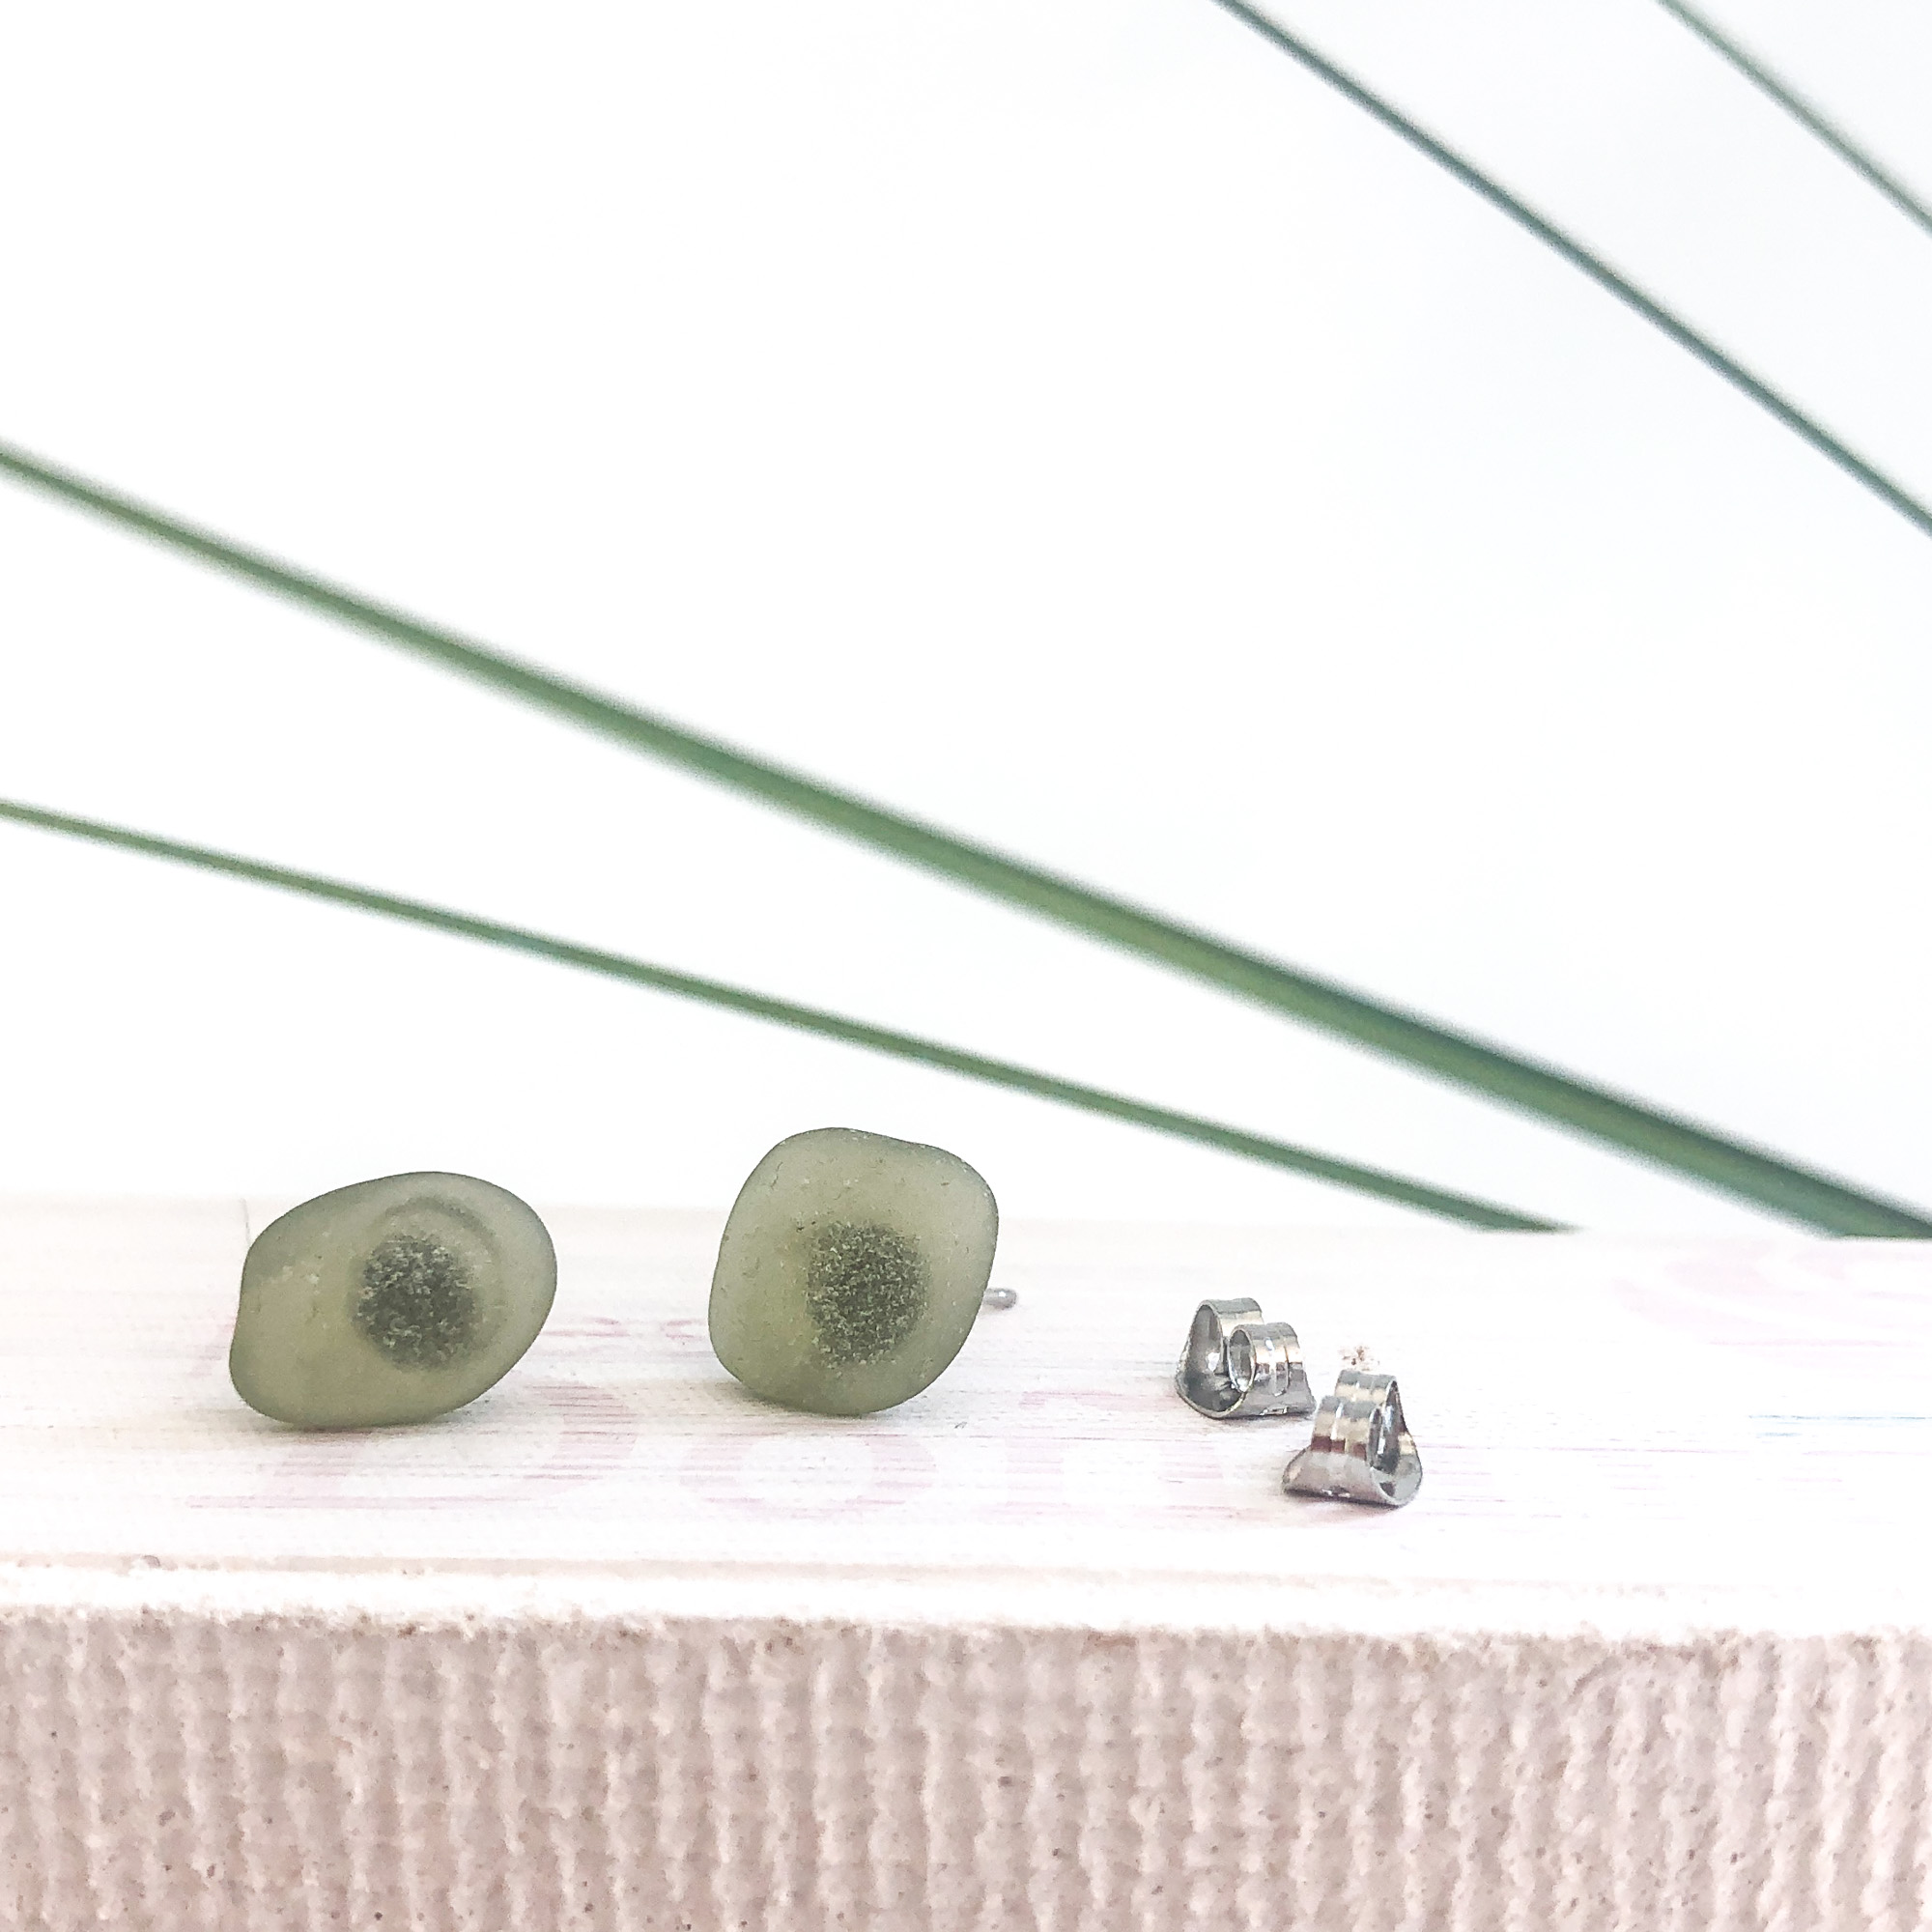 green sea glass studs - • genuine sea glass jewellery from France• handcollected at the French riviera• stainless steel posts• SGES1.115 Euro